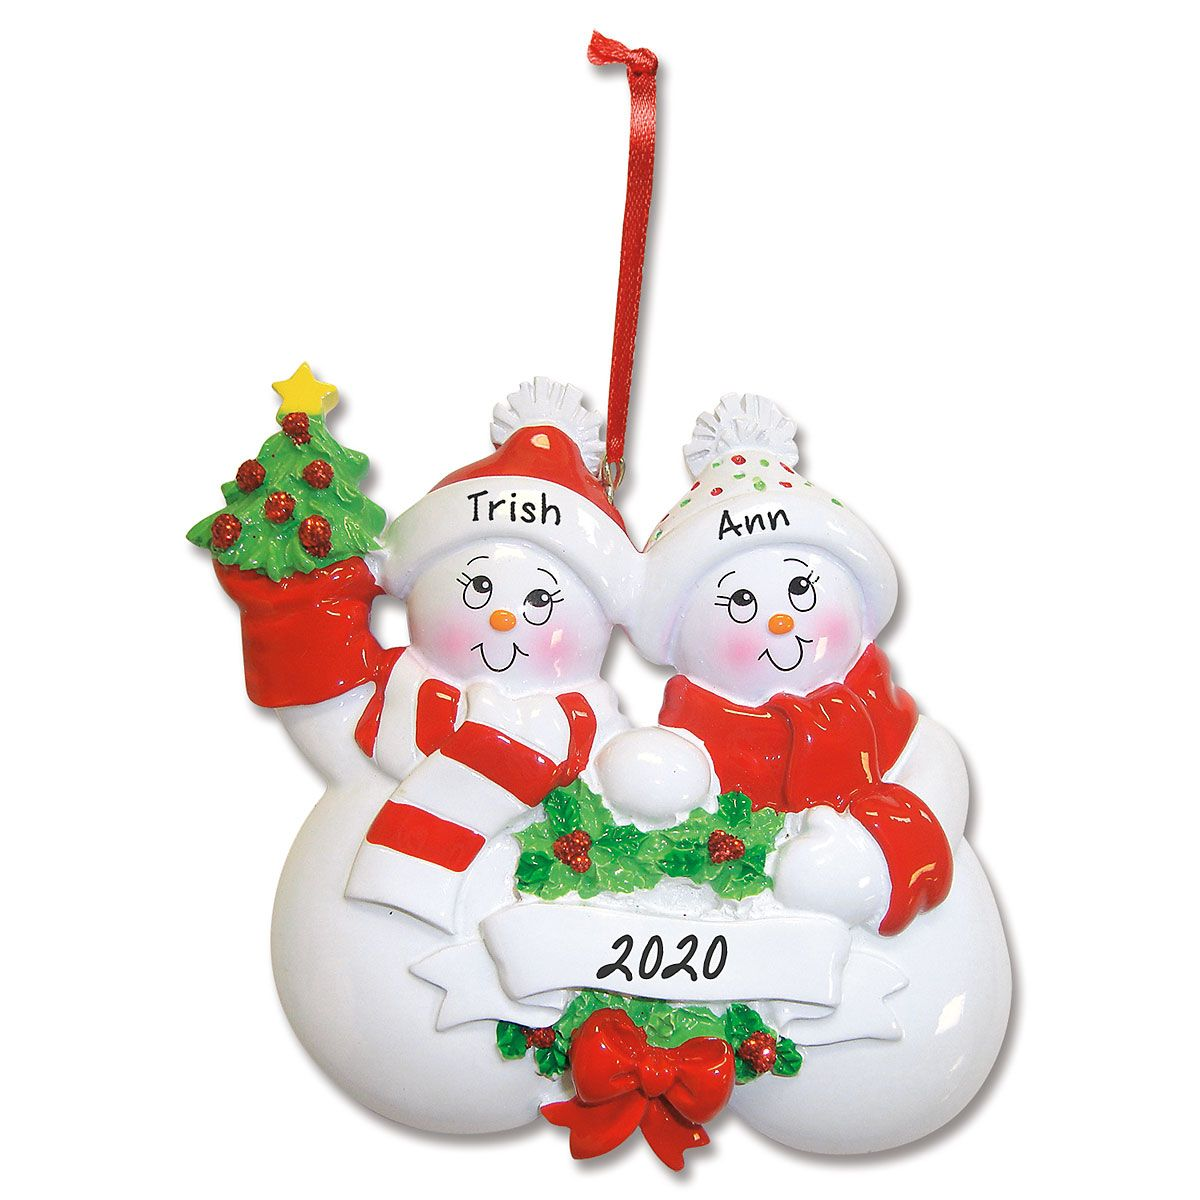 Personalized Glittered Snowman Ornament